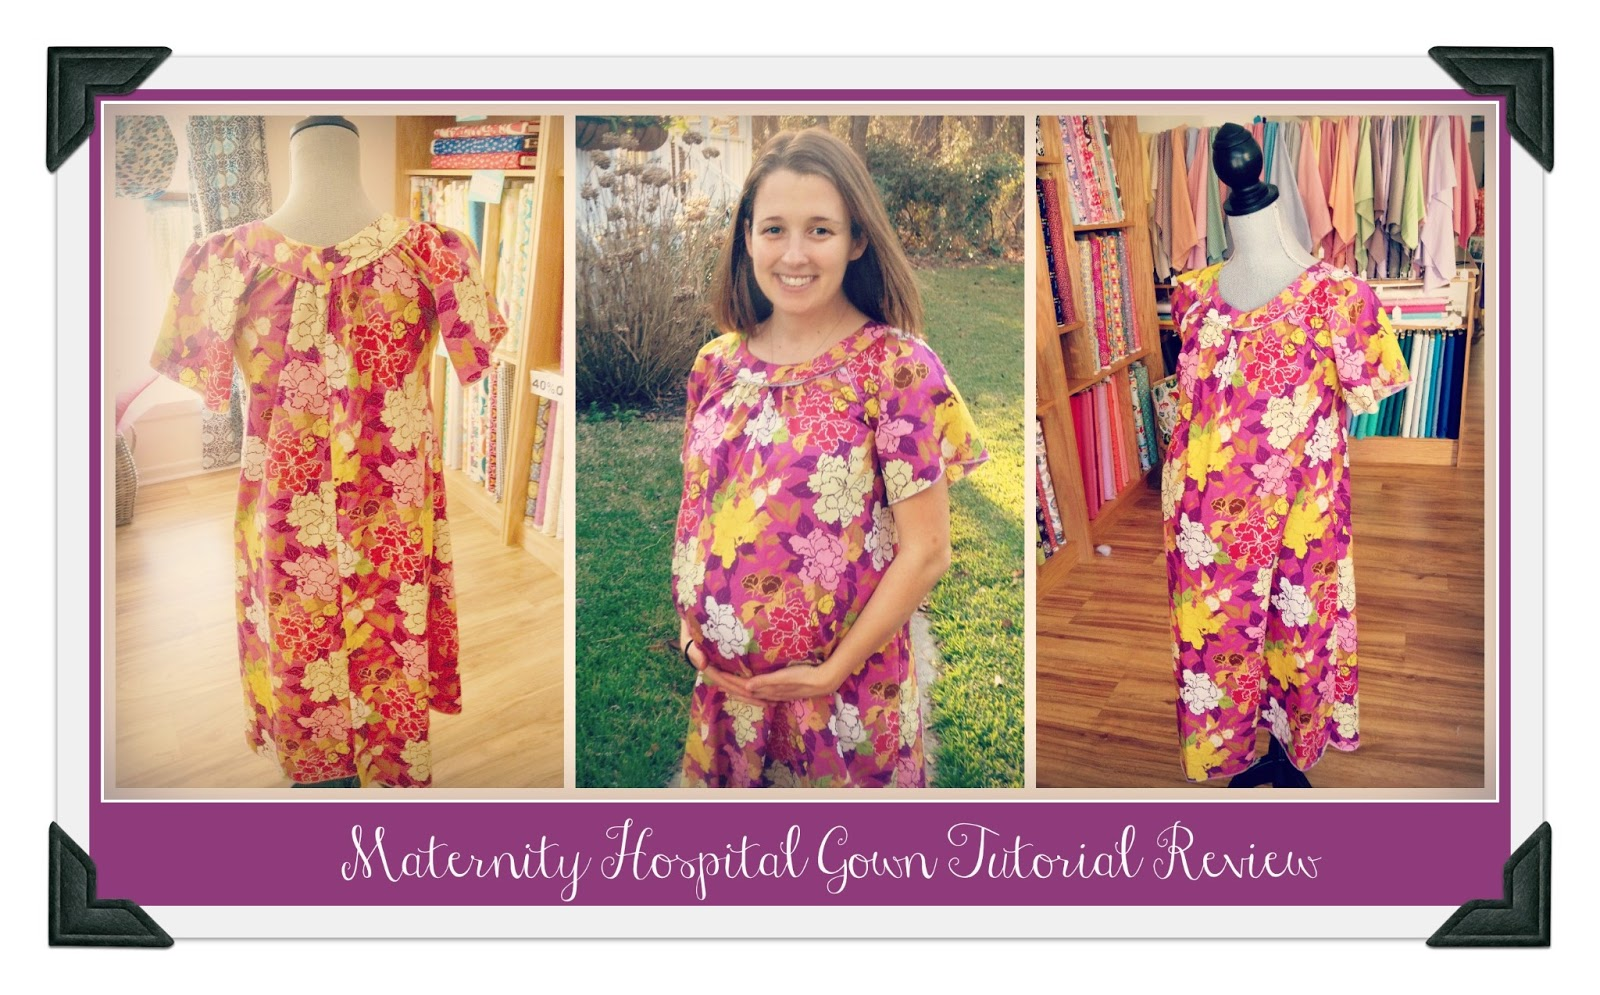 We Are Sew Happy Maternity Hospital Gown Tutorial Review